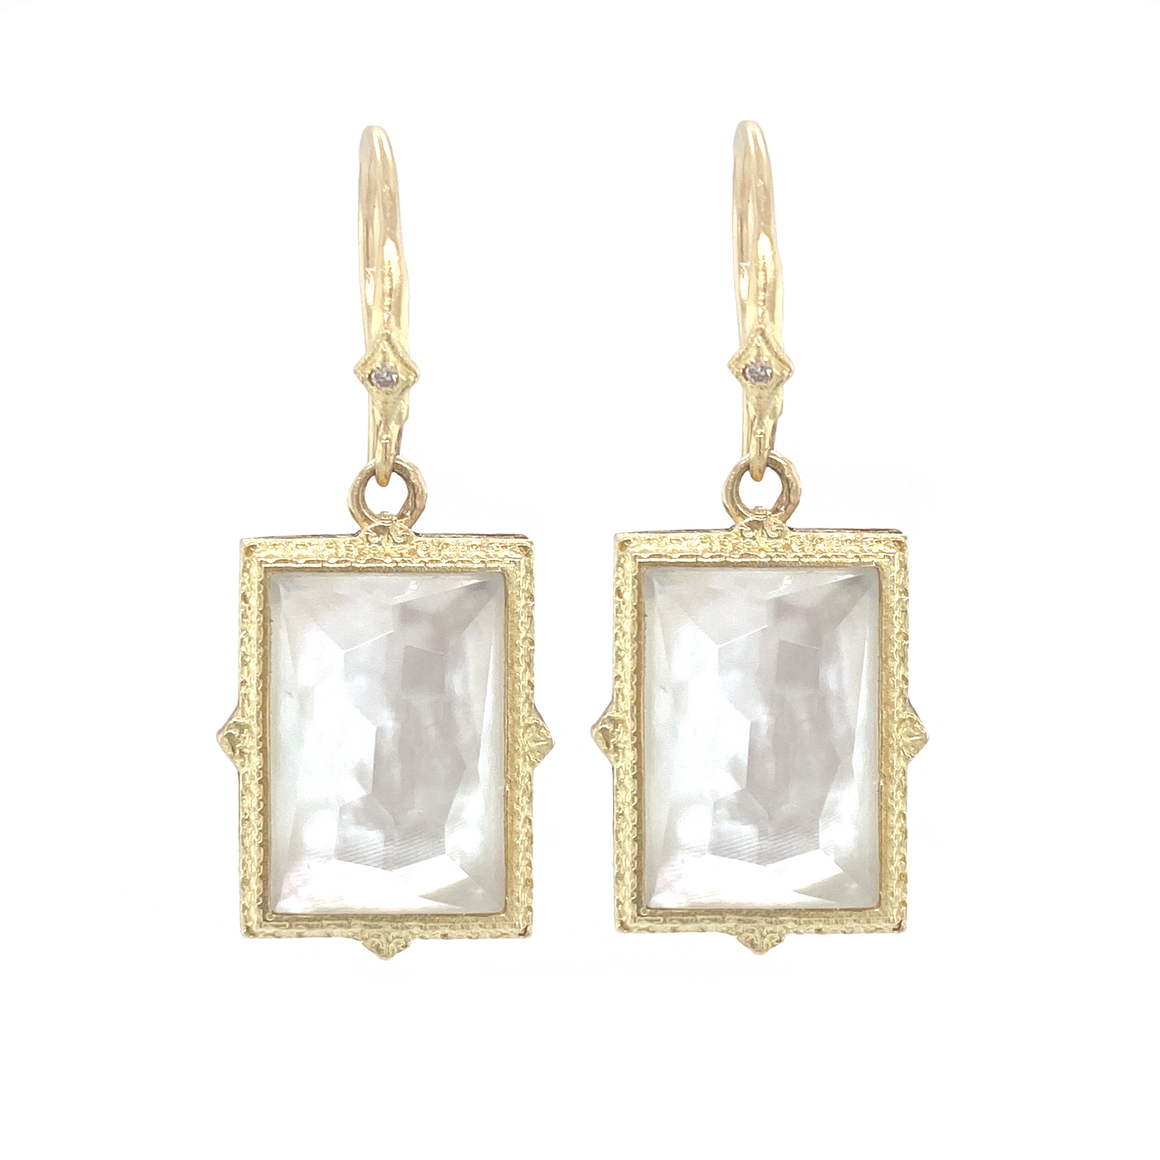 Mother of Pearl and White Topaz Earrings - Lesley Ann Jewels